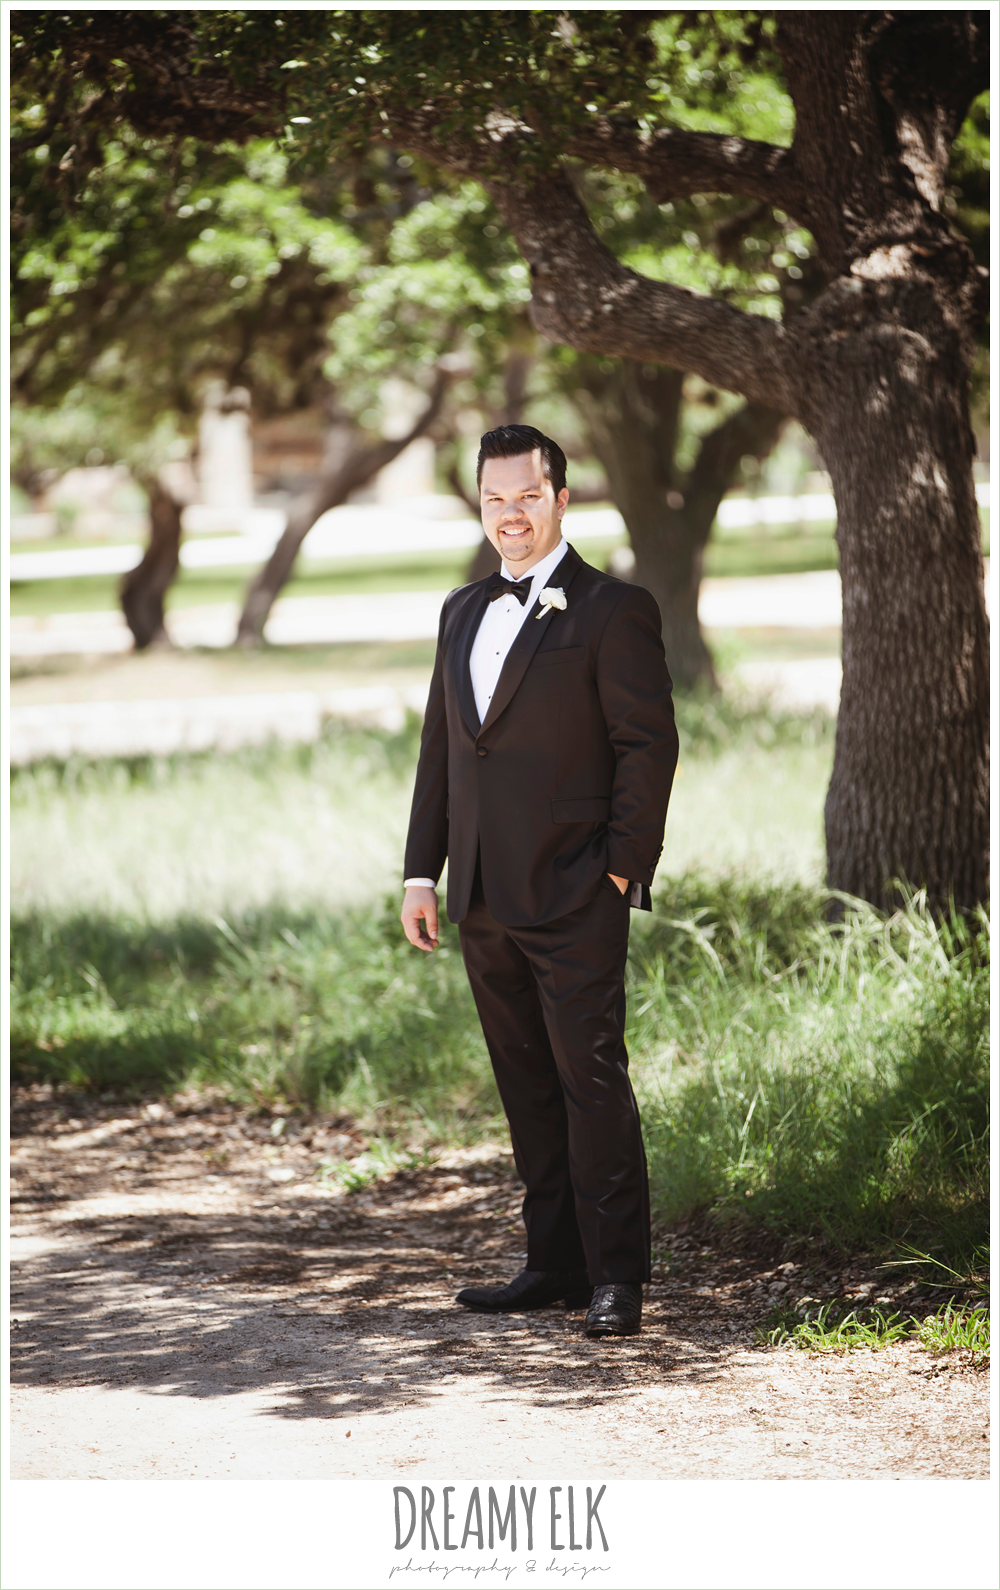 groom in tuxedo, la hacienda, dripping springs, texas {dreamy elk photography and design} photo